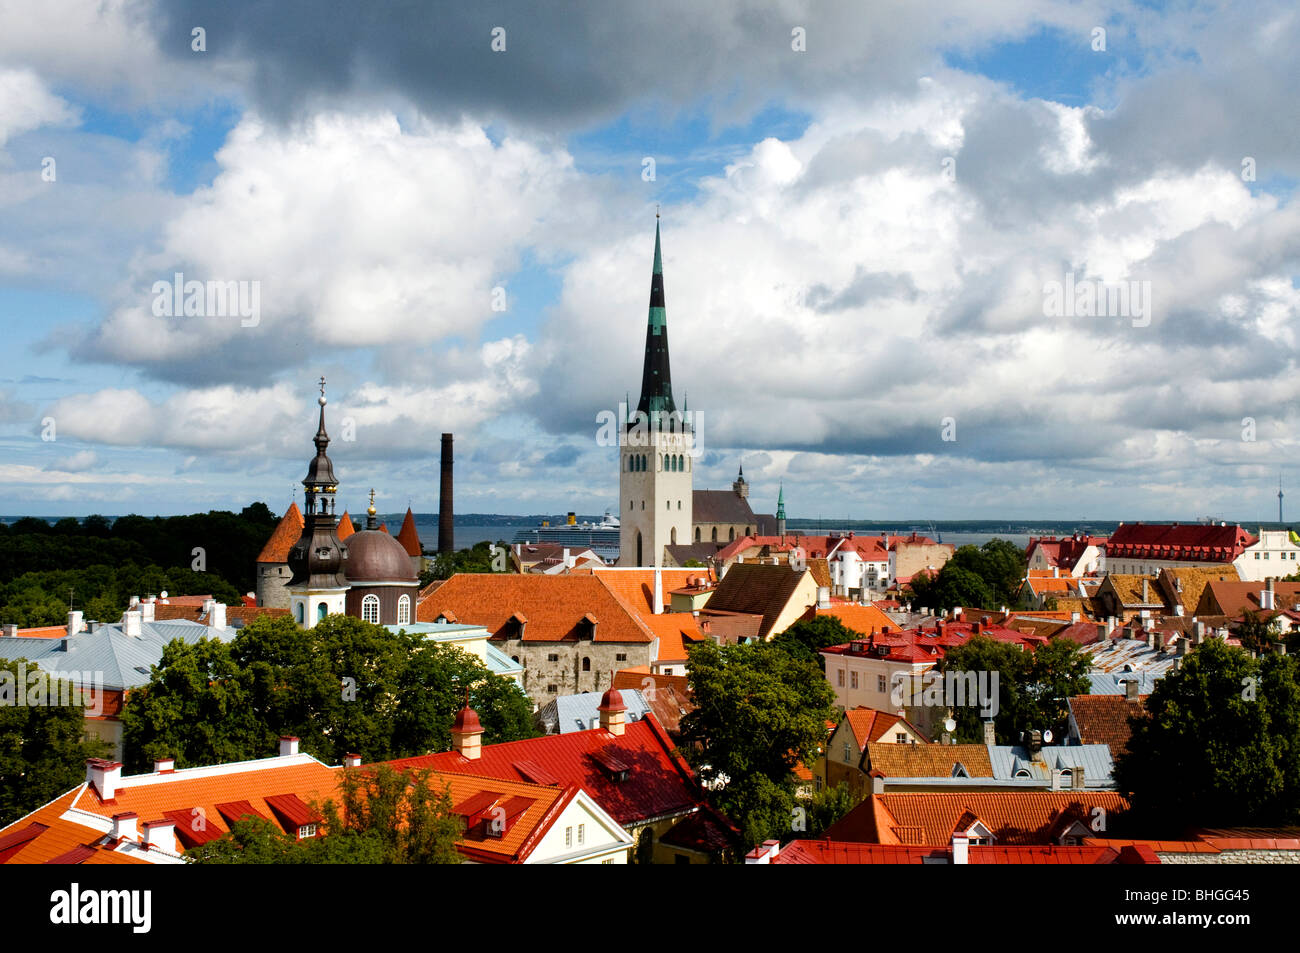 View of St Olav's Church and surrounding rooftops, Tallinn, Estonia - Stock Image